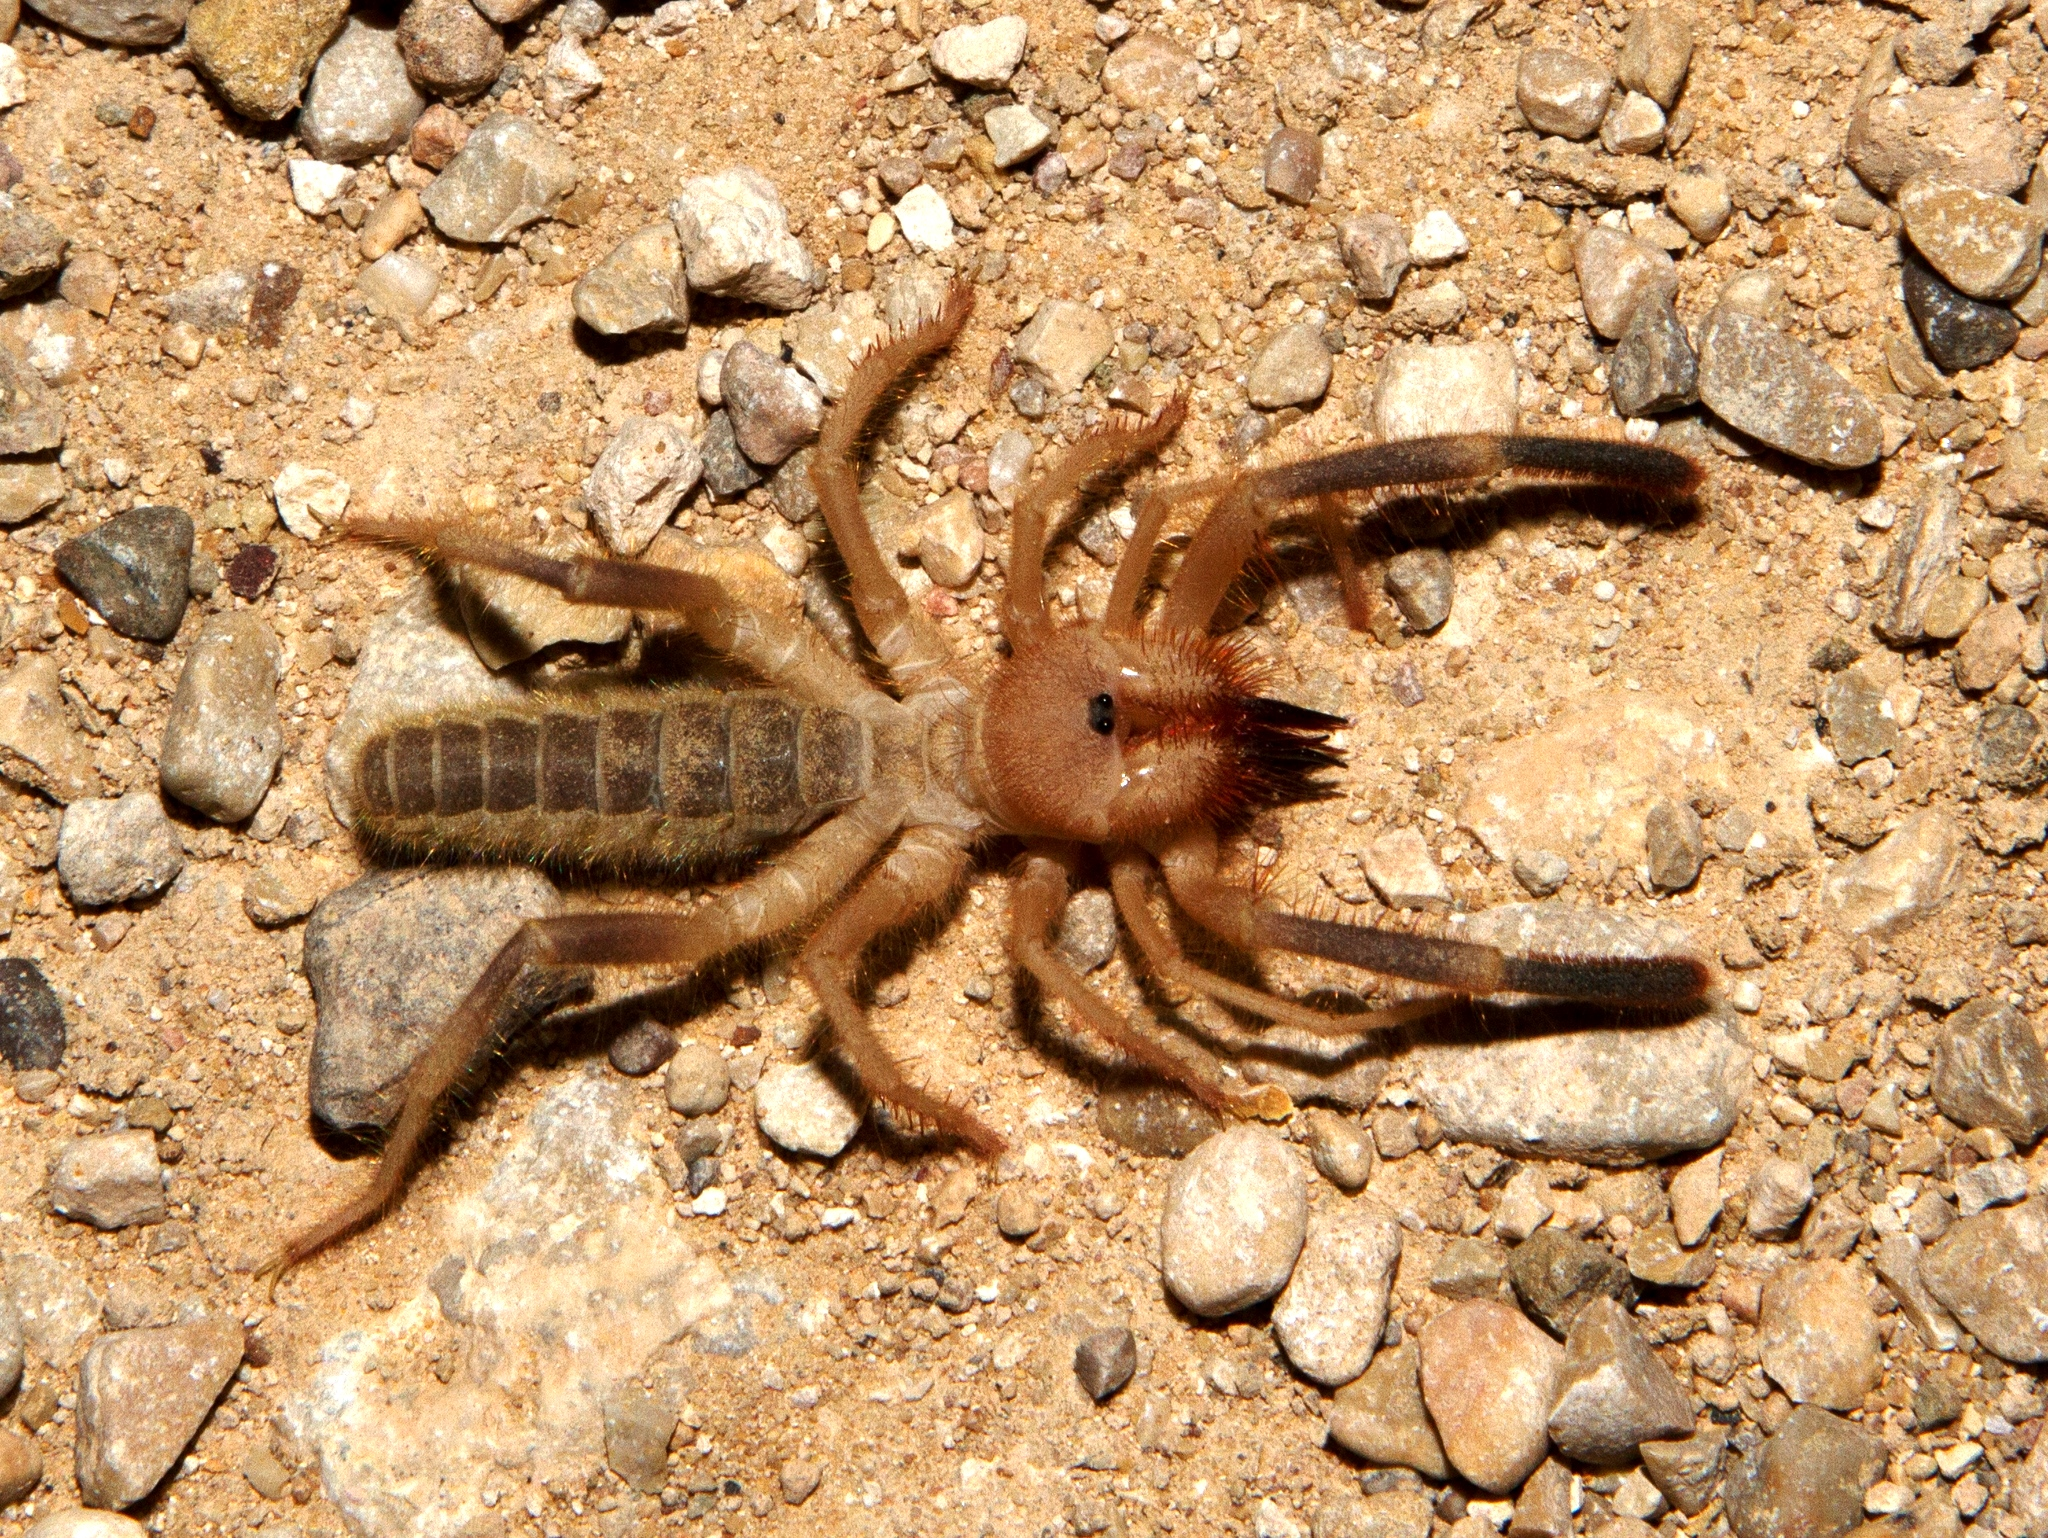 Tooth cave spider pictures Massive 'prehistoric mega shark tooth found in Italy